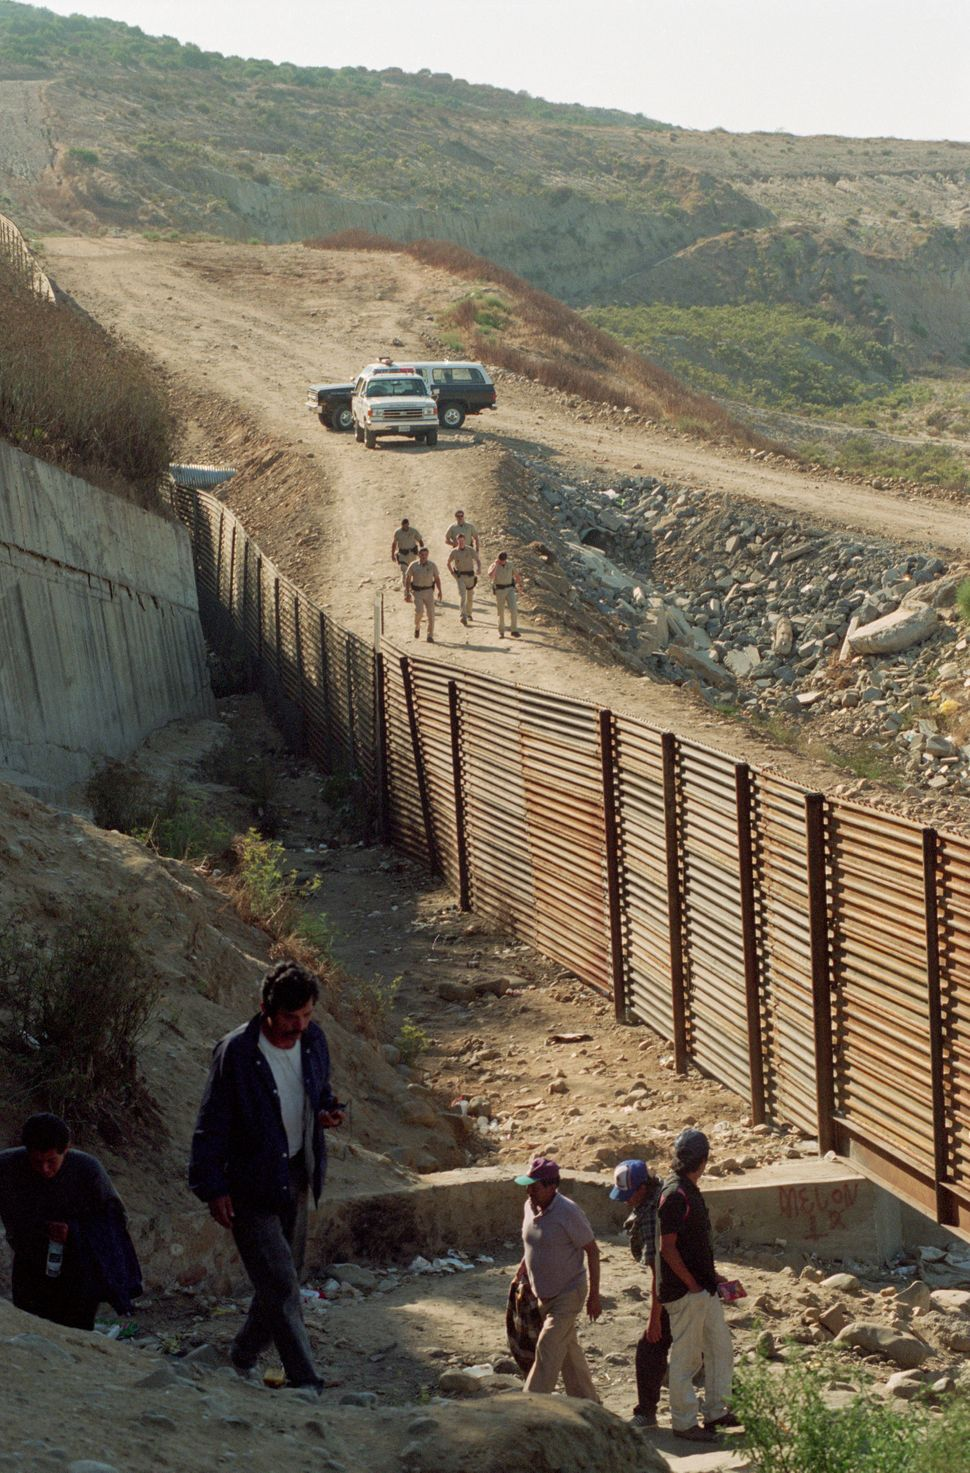 U.S. Customs agents patrolling the border.